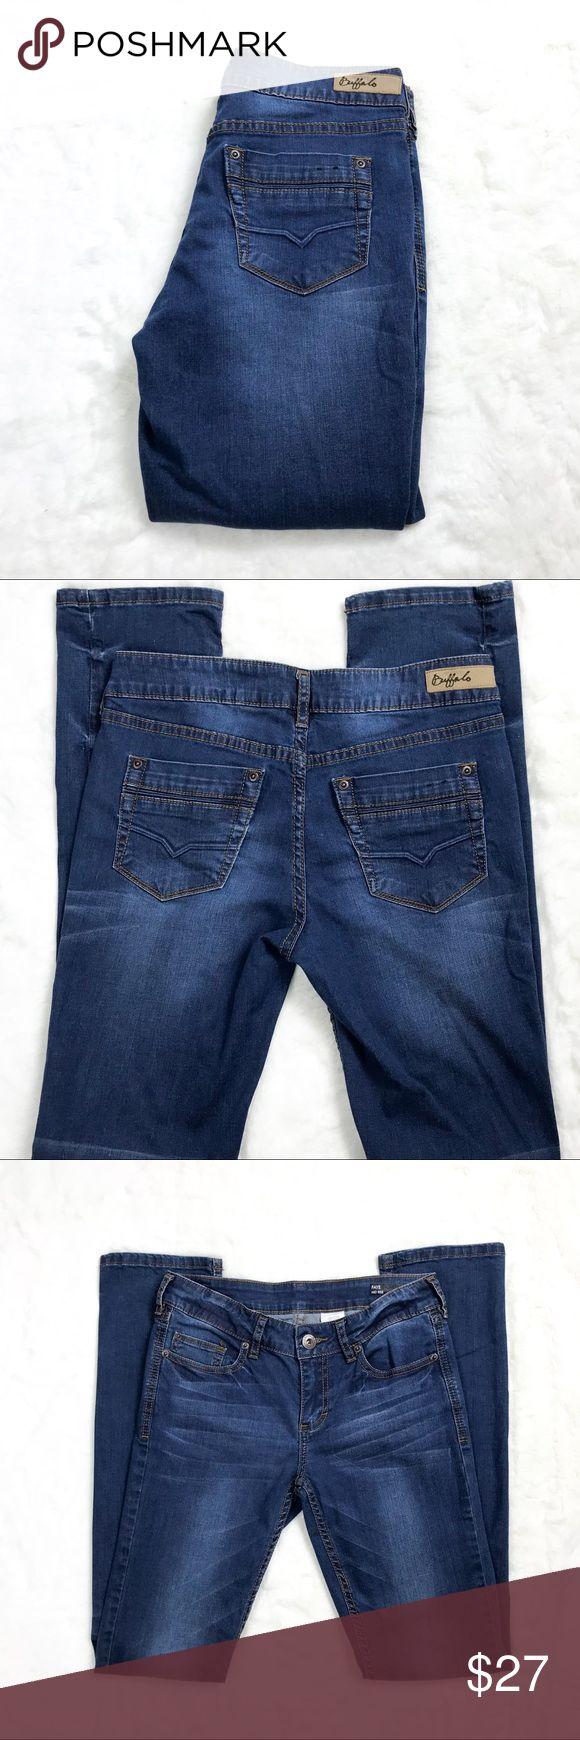 """Women's Buffalo David Faye Mid Rise Jeans Size 27 Women's Buffalo David Bitton Faye Mid Rise Stretch Straight Jeans Size 27  Condition: Excellent!  Measurements:  Size: 27 Waist: 28"""" Front Rise: 8"""" Inseam: 32"""" Buffalo David Bitton Jeans Straight Leg"""